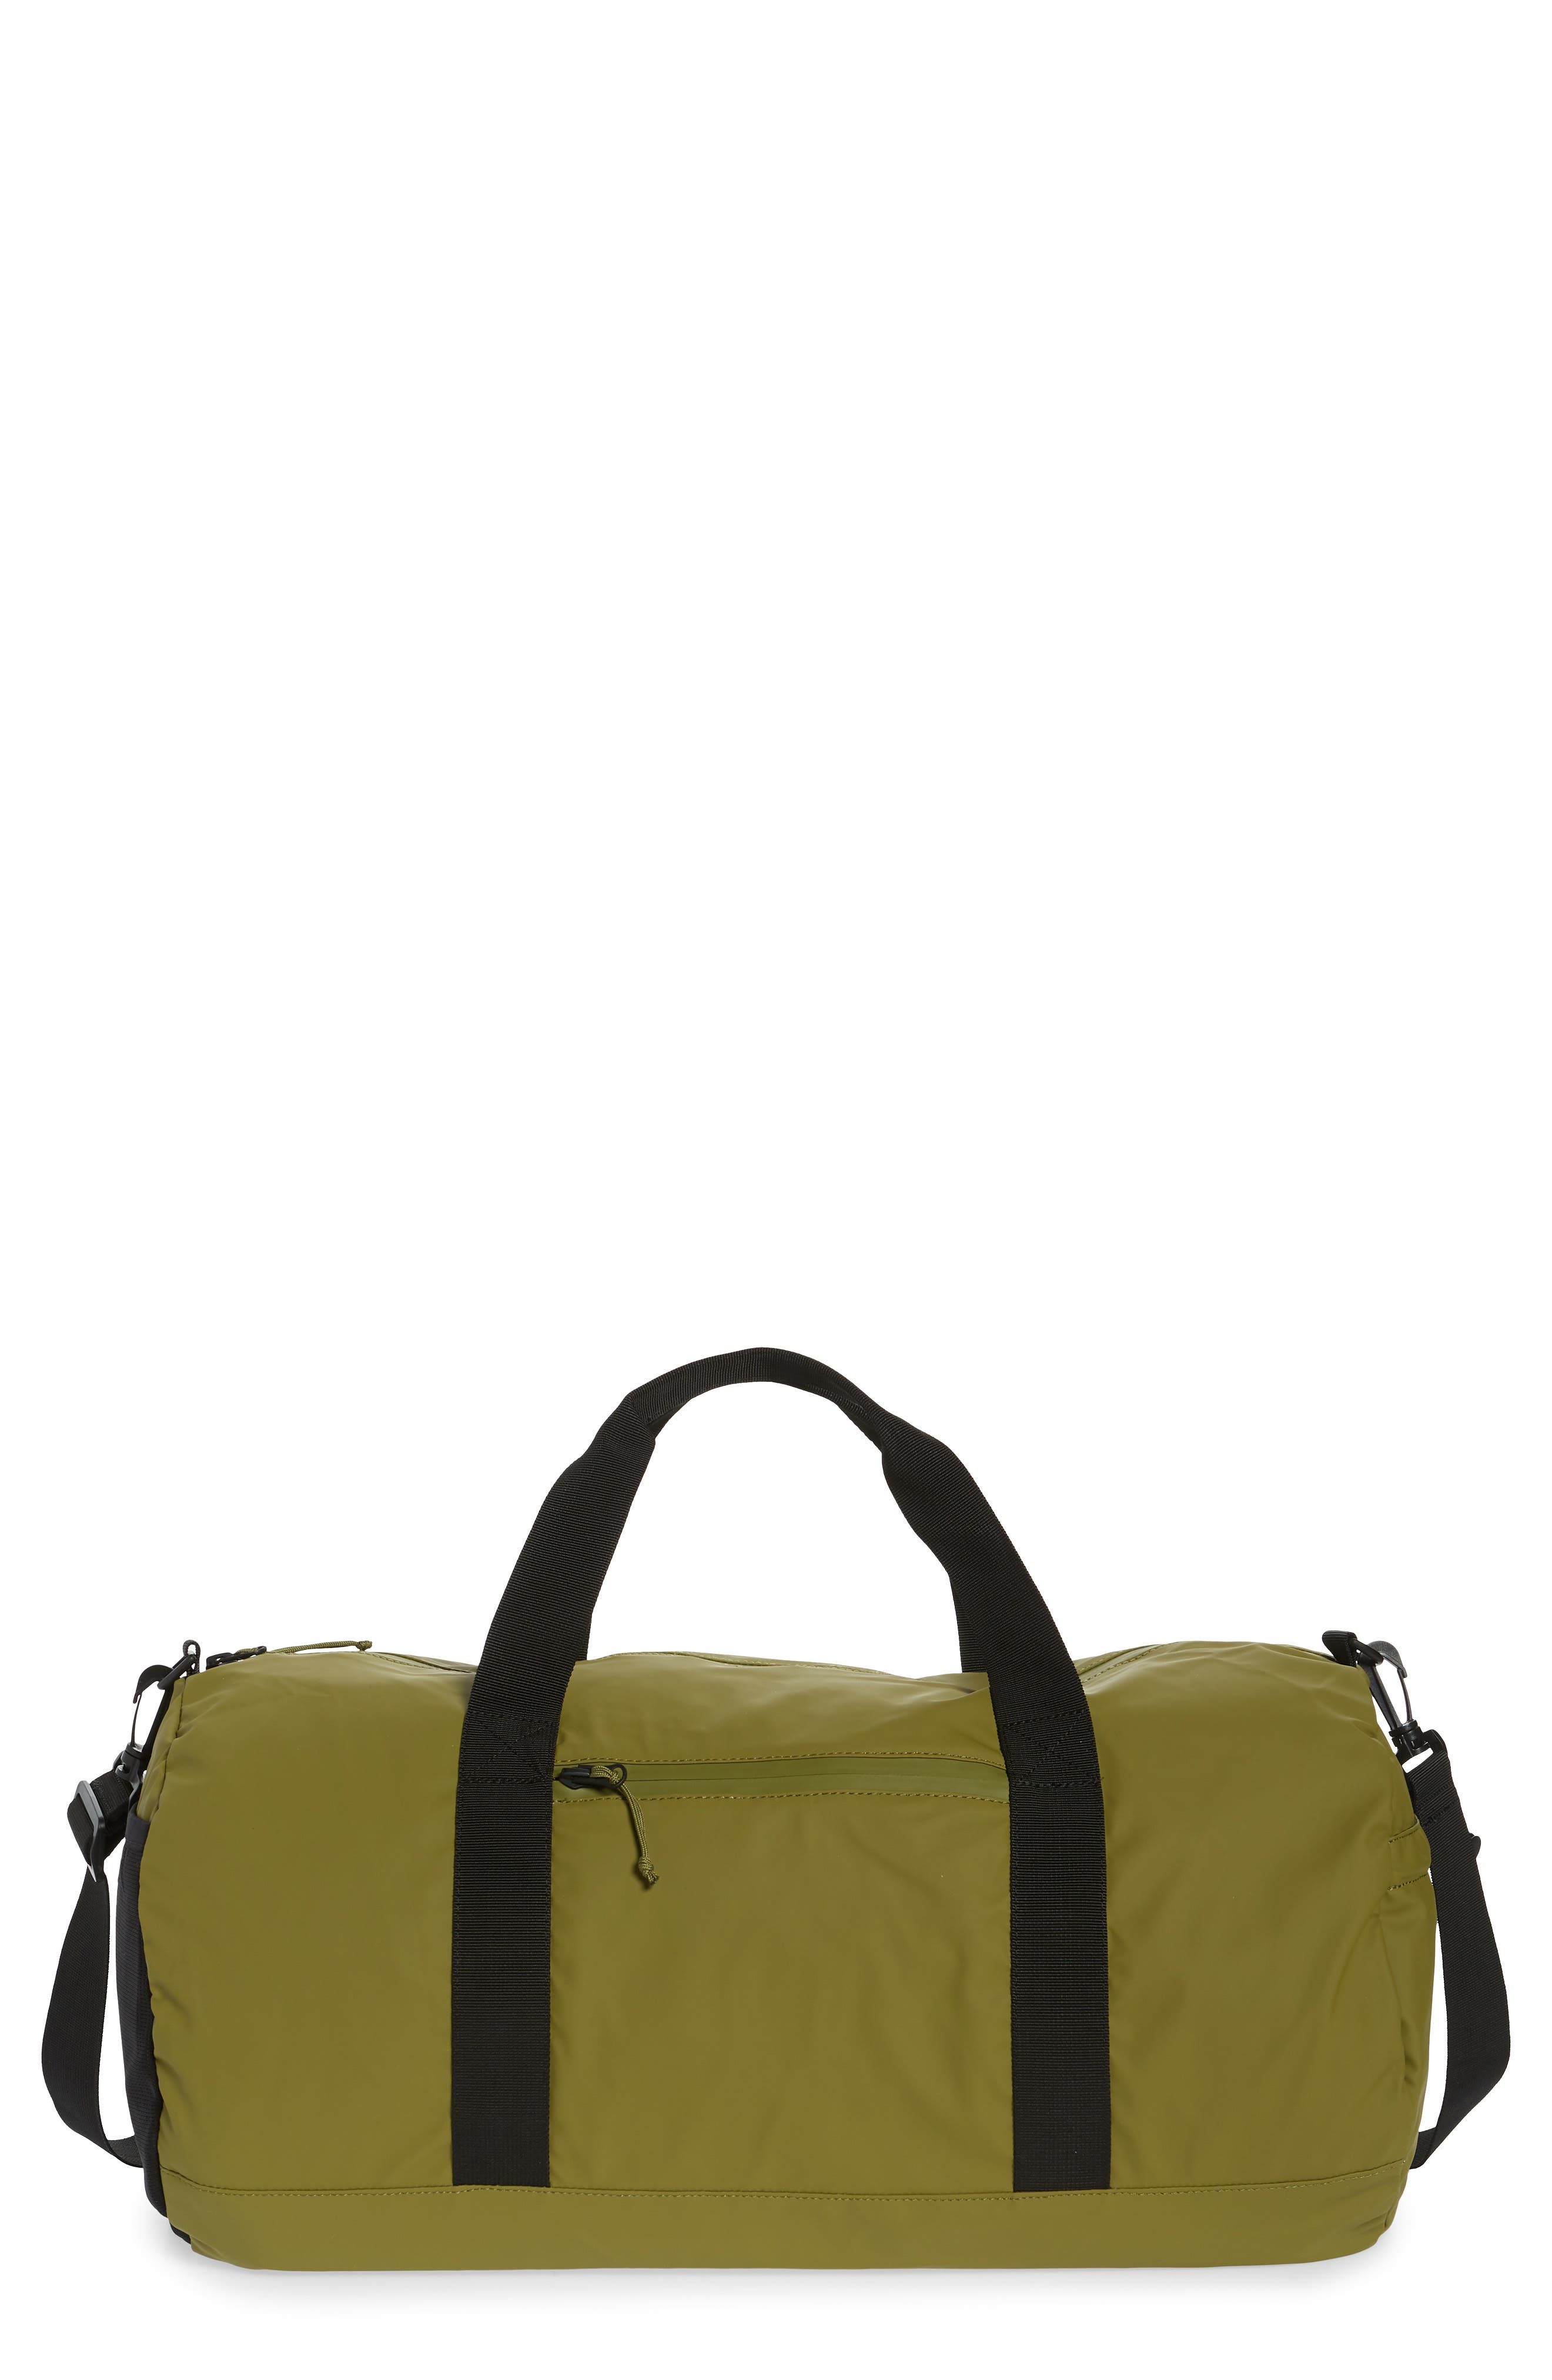 Mover Duffle Bag